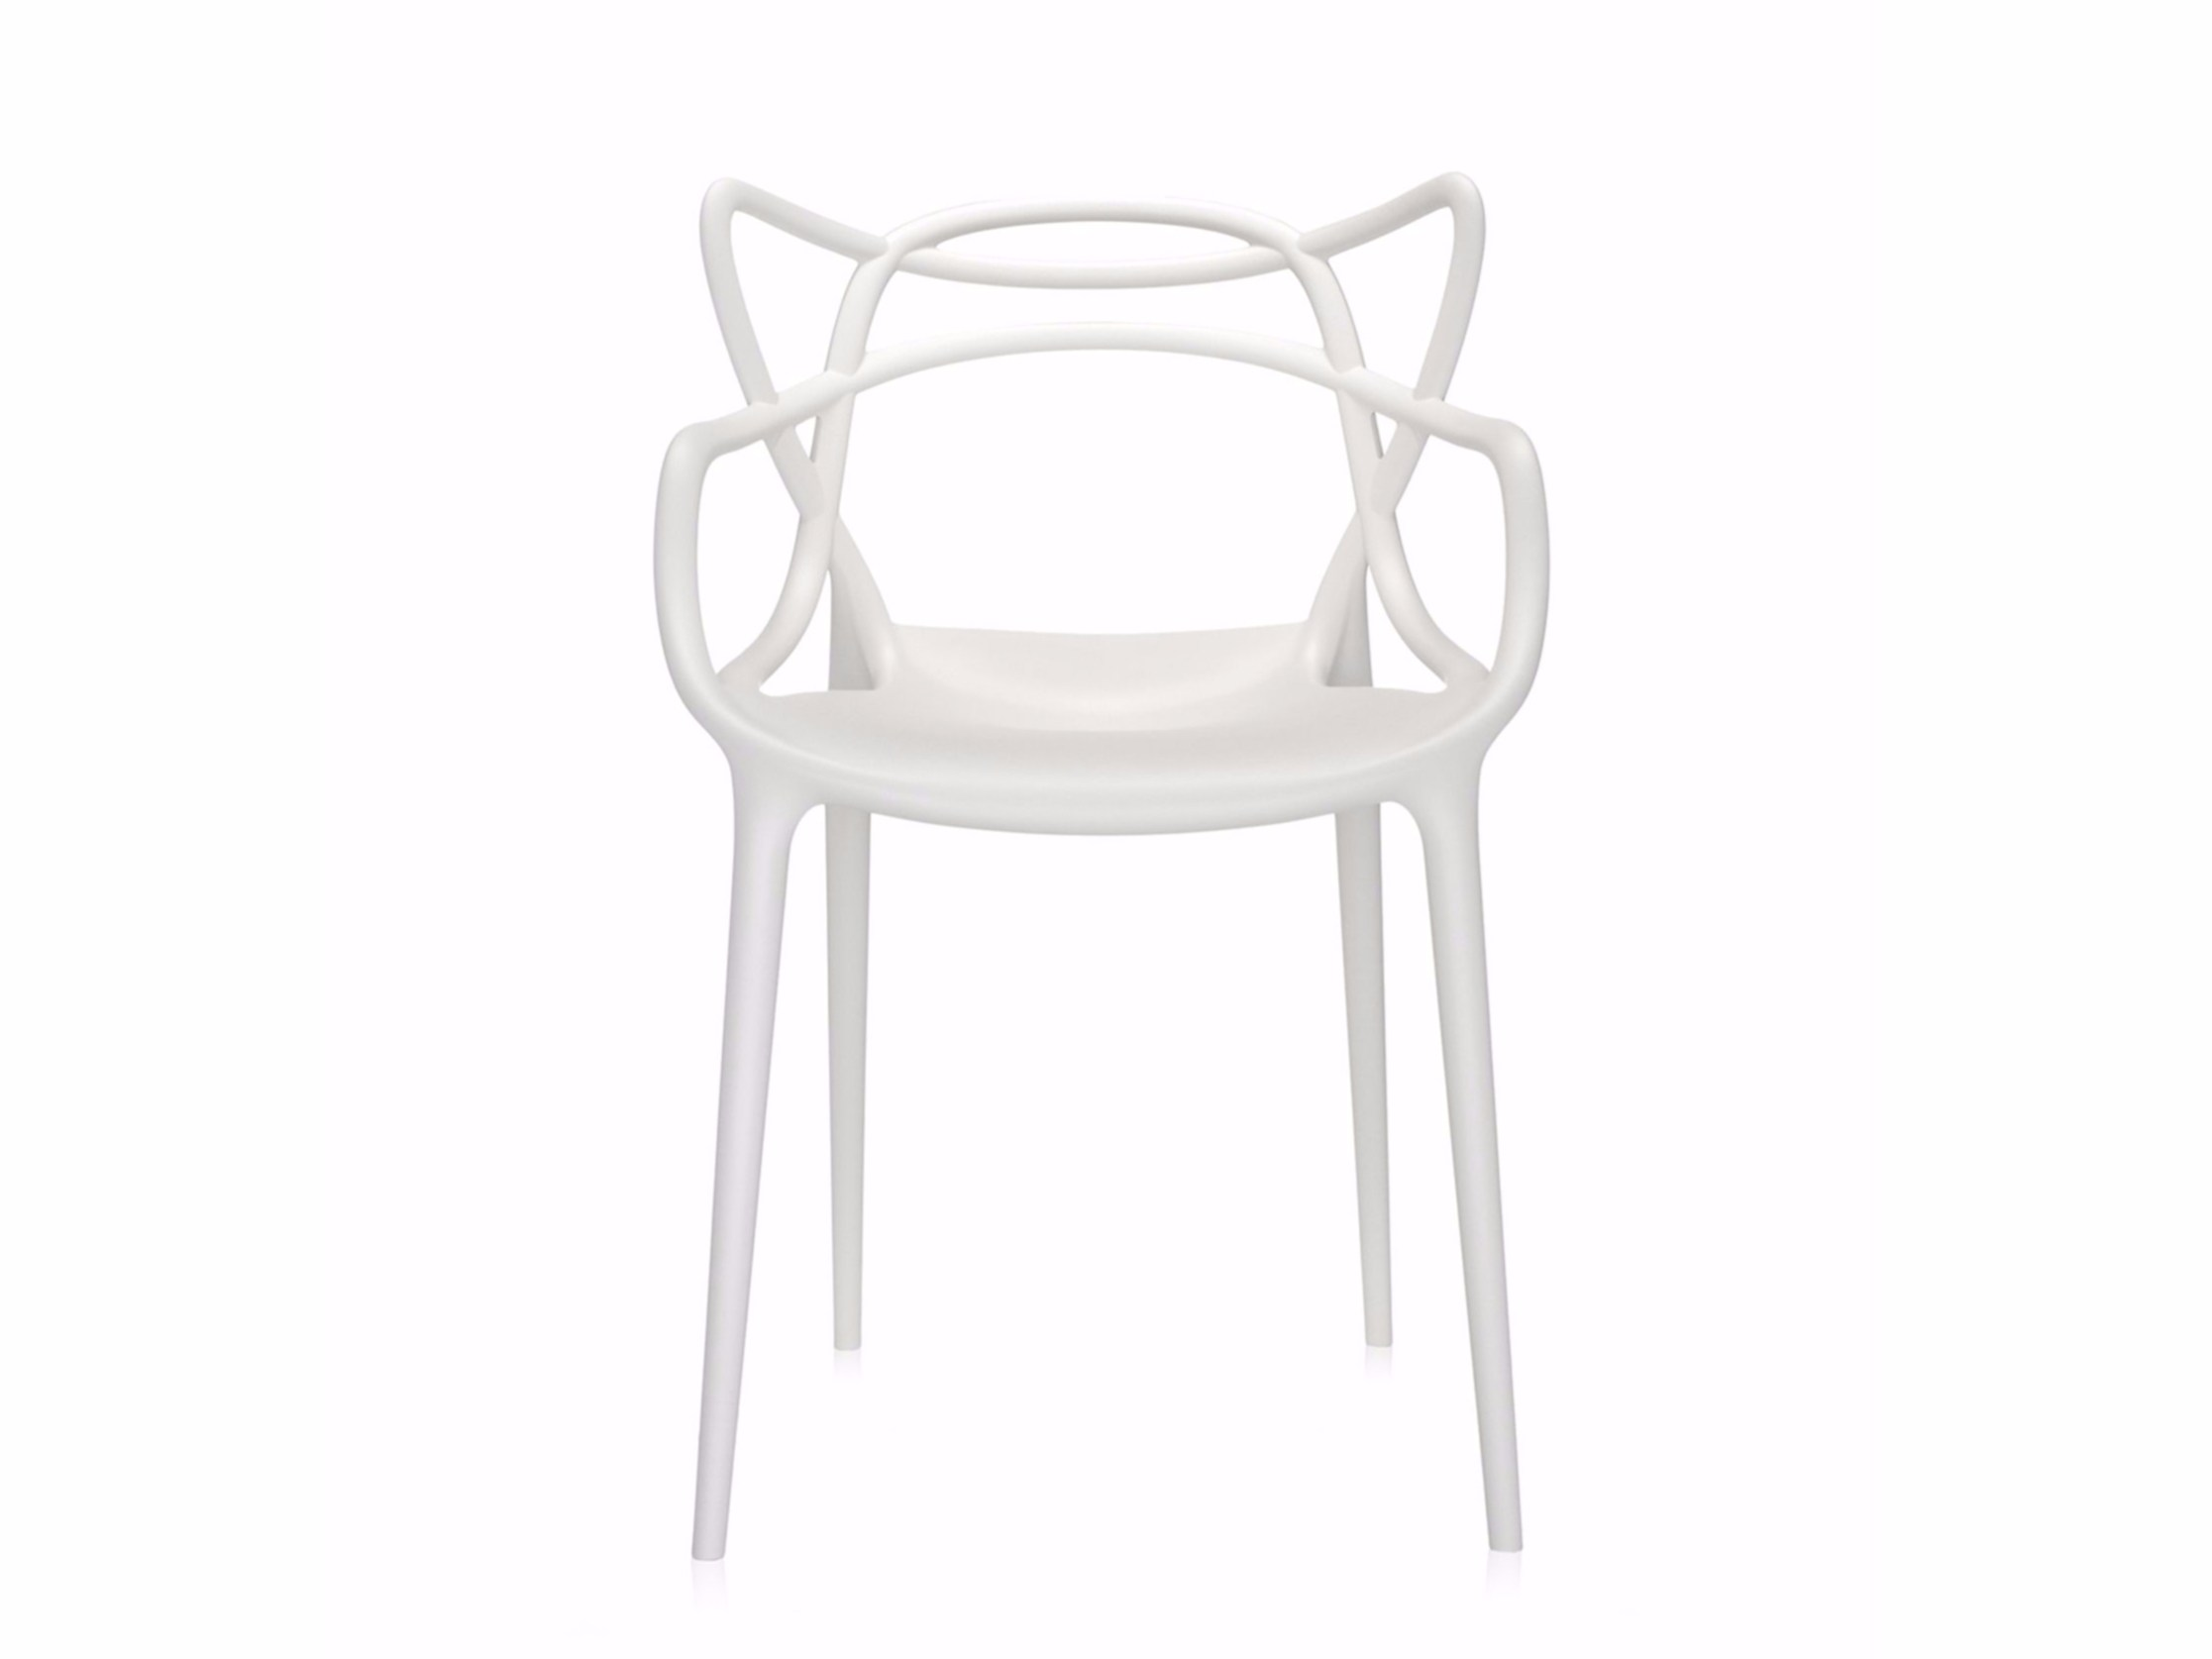 Products by Kartell